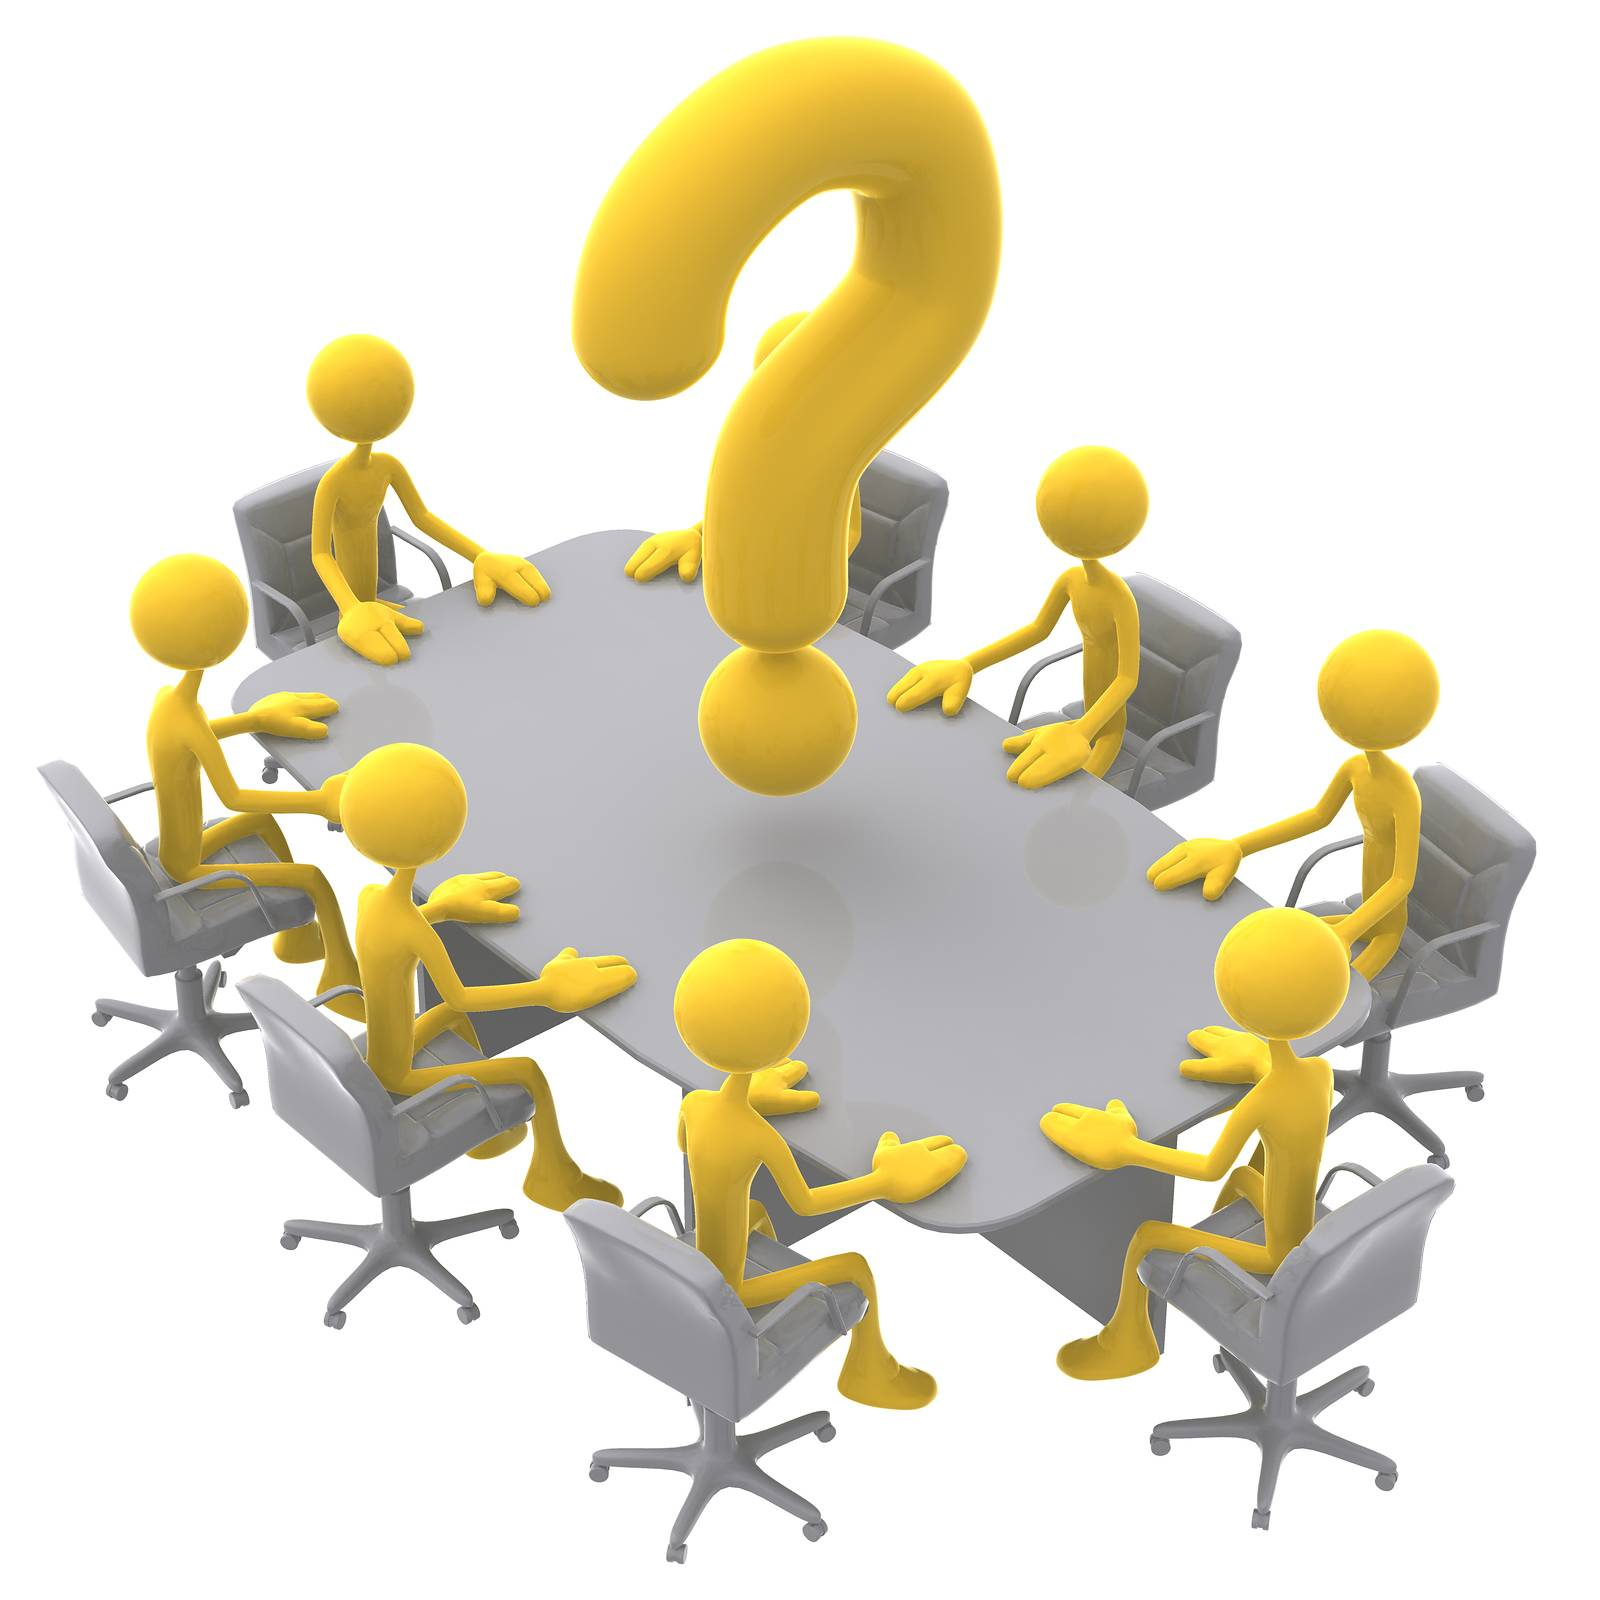 Summit clipart group discussion Your TJinsite These can at